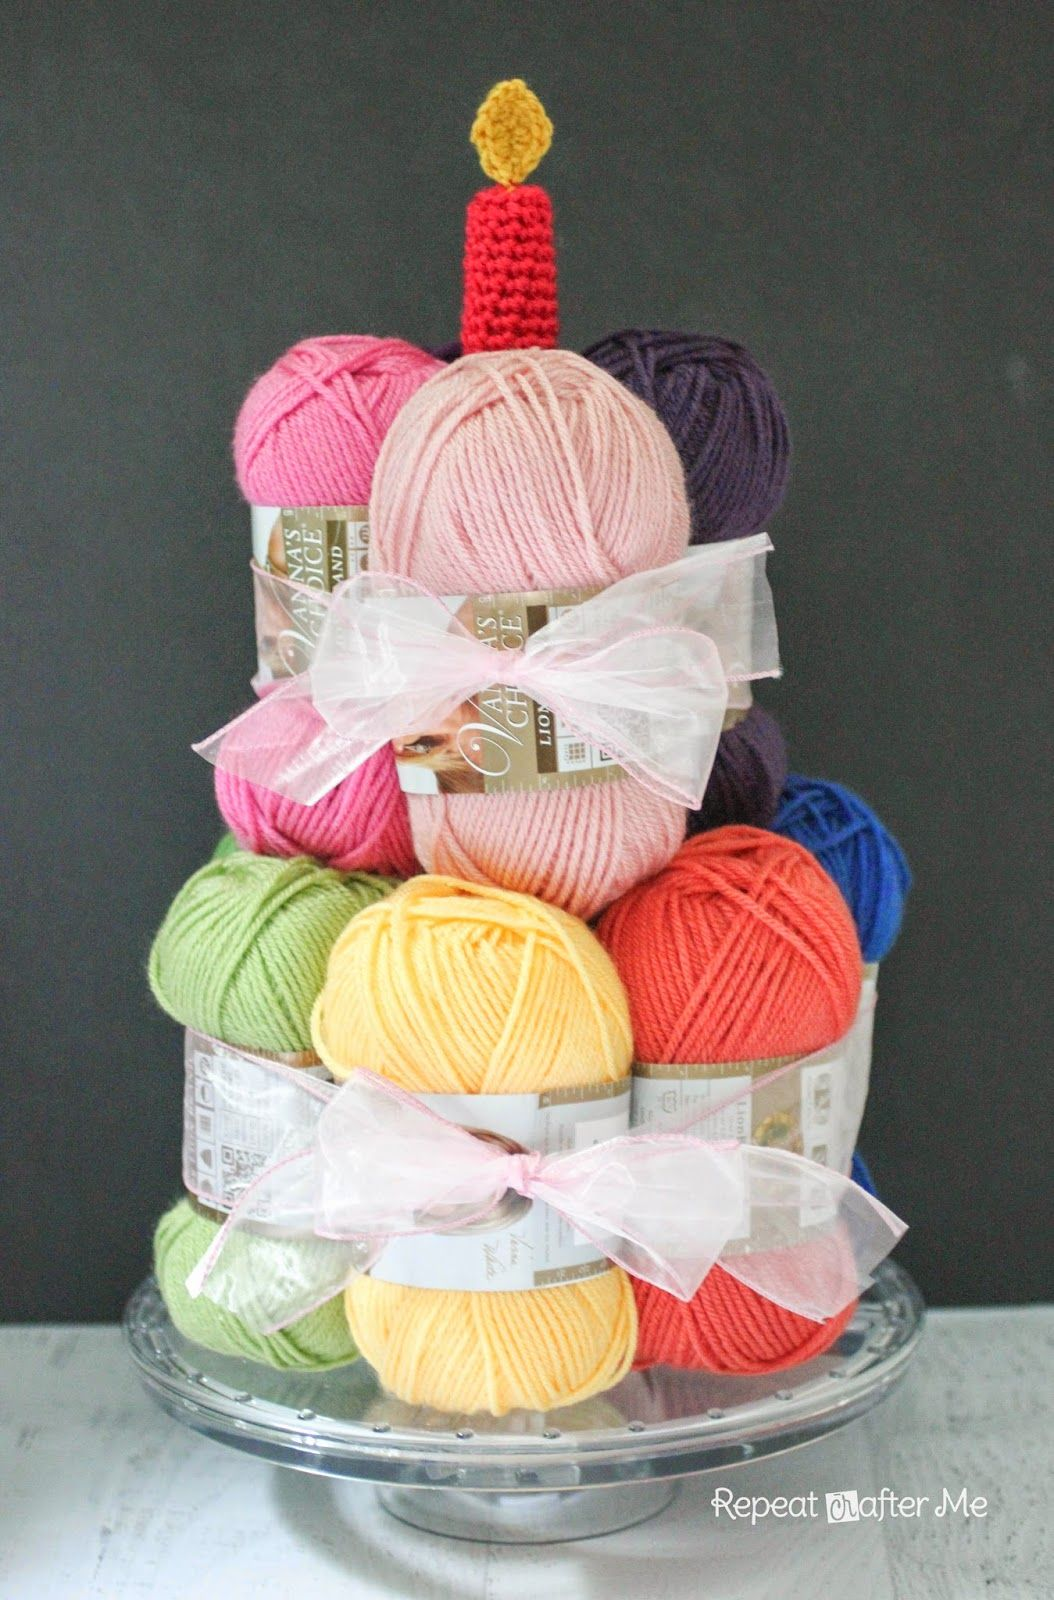 Repeat Crafter Me Yarn Cake With A Crochet Candle